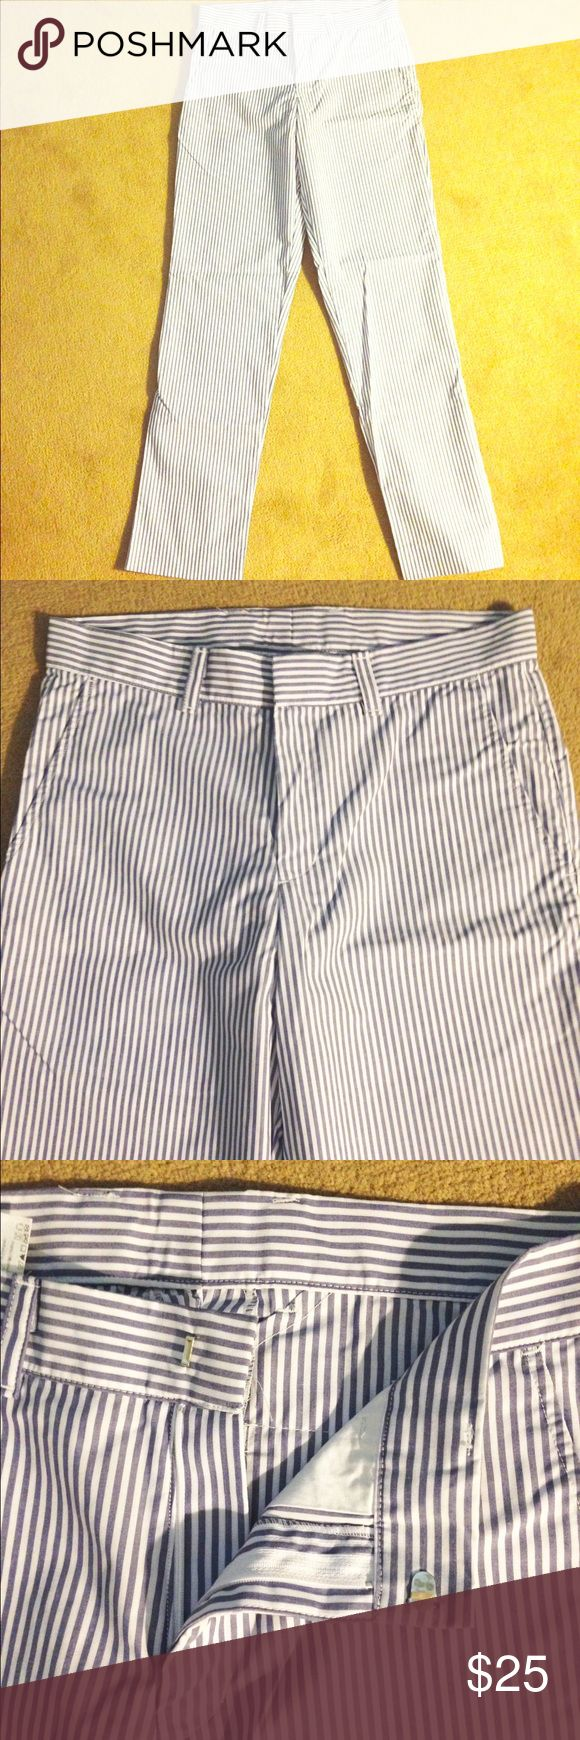 American Apparel Men's Pinstriped Pants Size 31 Blue and White vertical stripes, Men pants, American Apparel, Size 31, two front and two back pockets, belt loops American Apparel Pants Dress